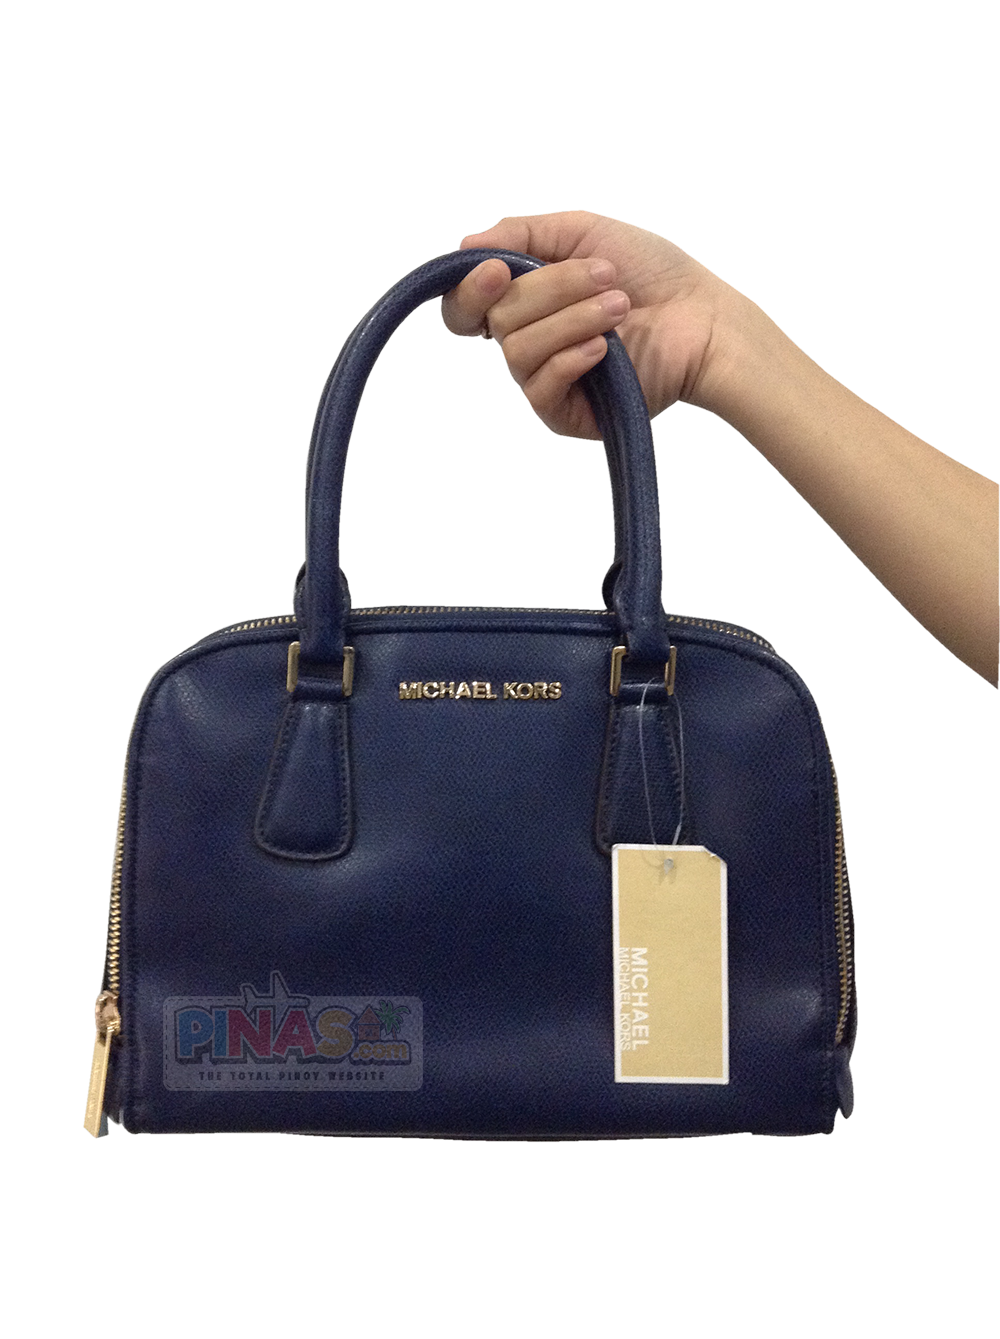 Michael kors tote bags philippines - Michael Kors Hand Bag Navy Blue